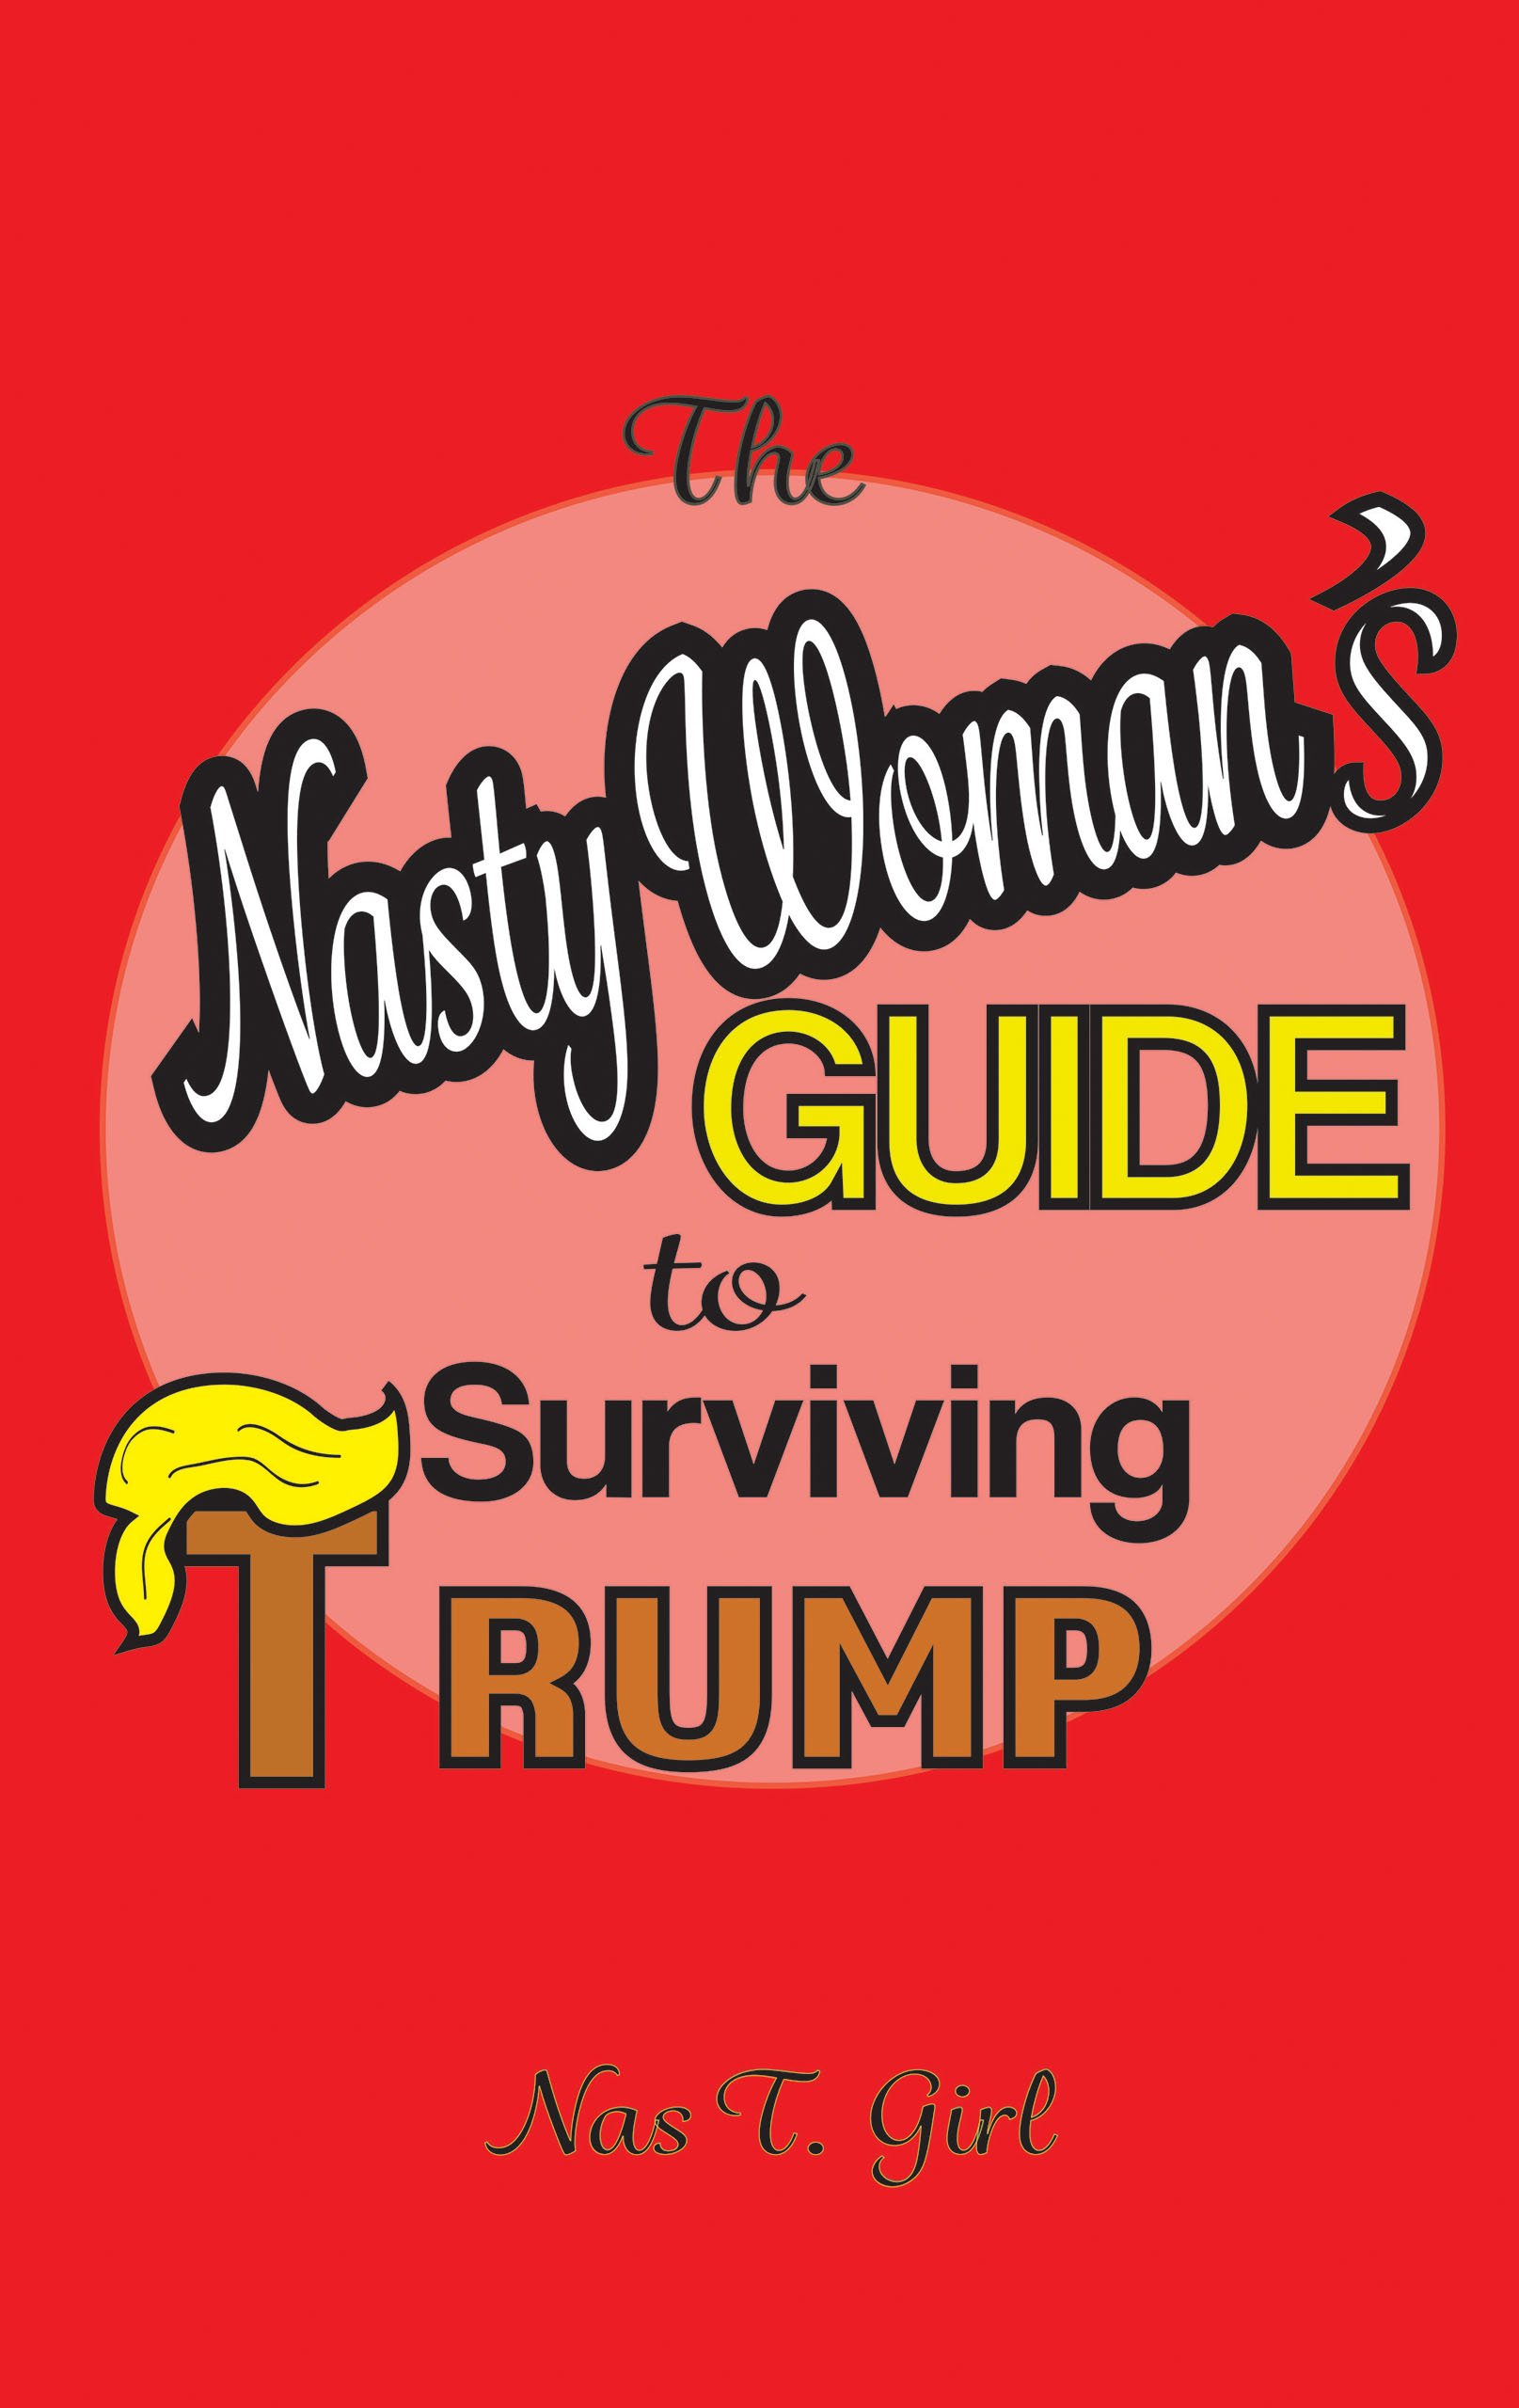 The Nasty Woman's Guide to Surviving Trump